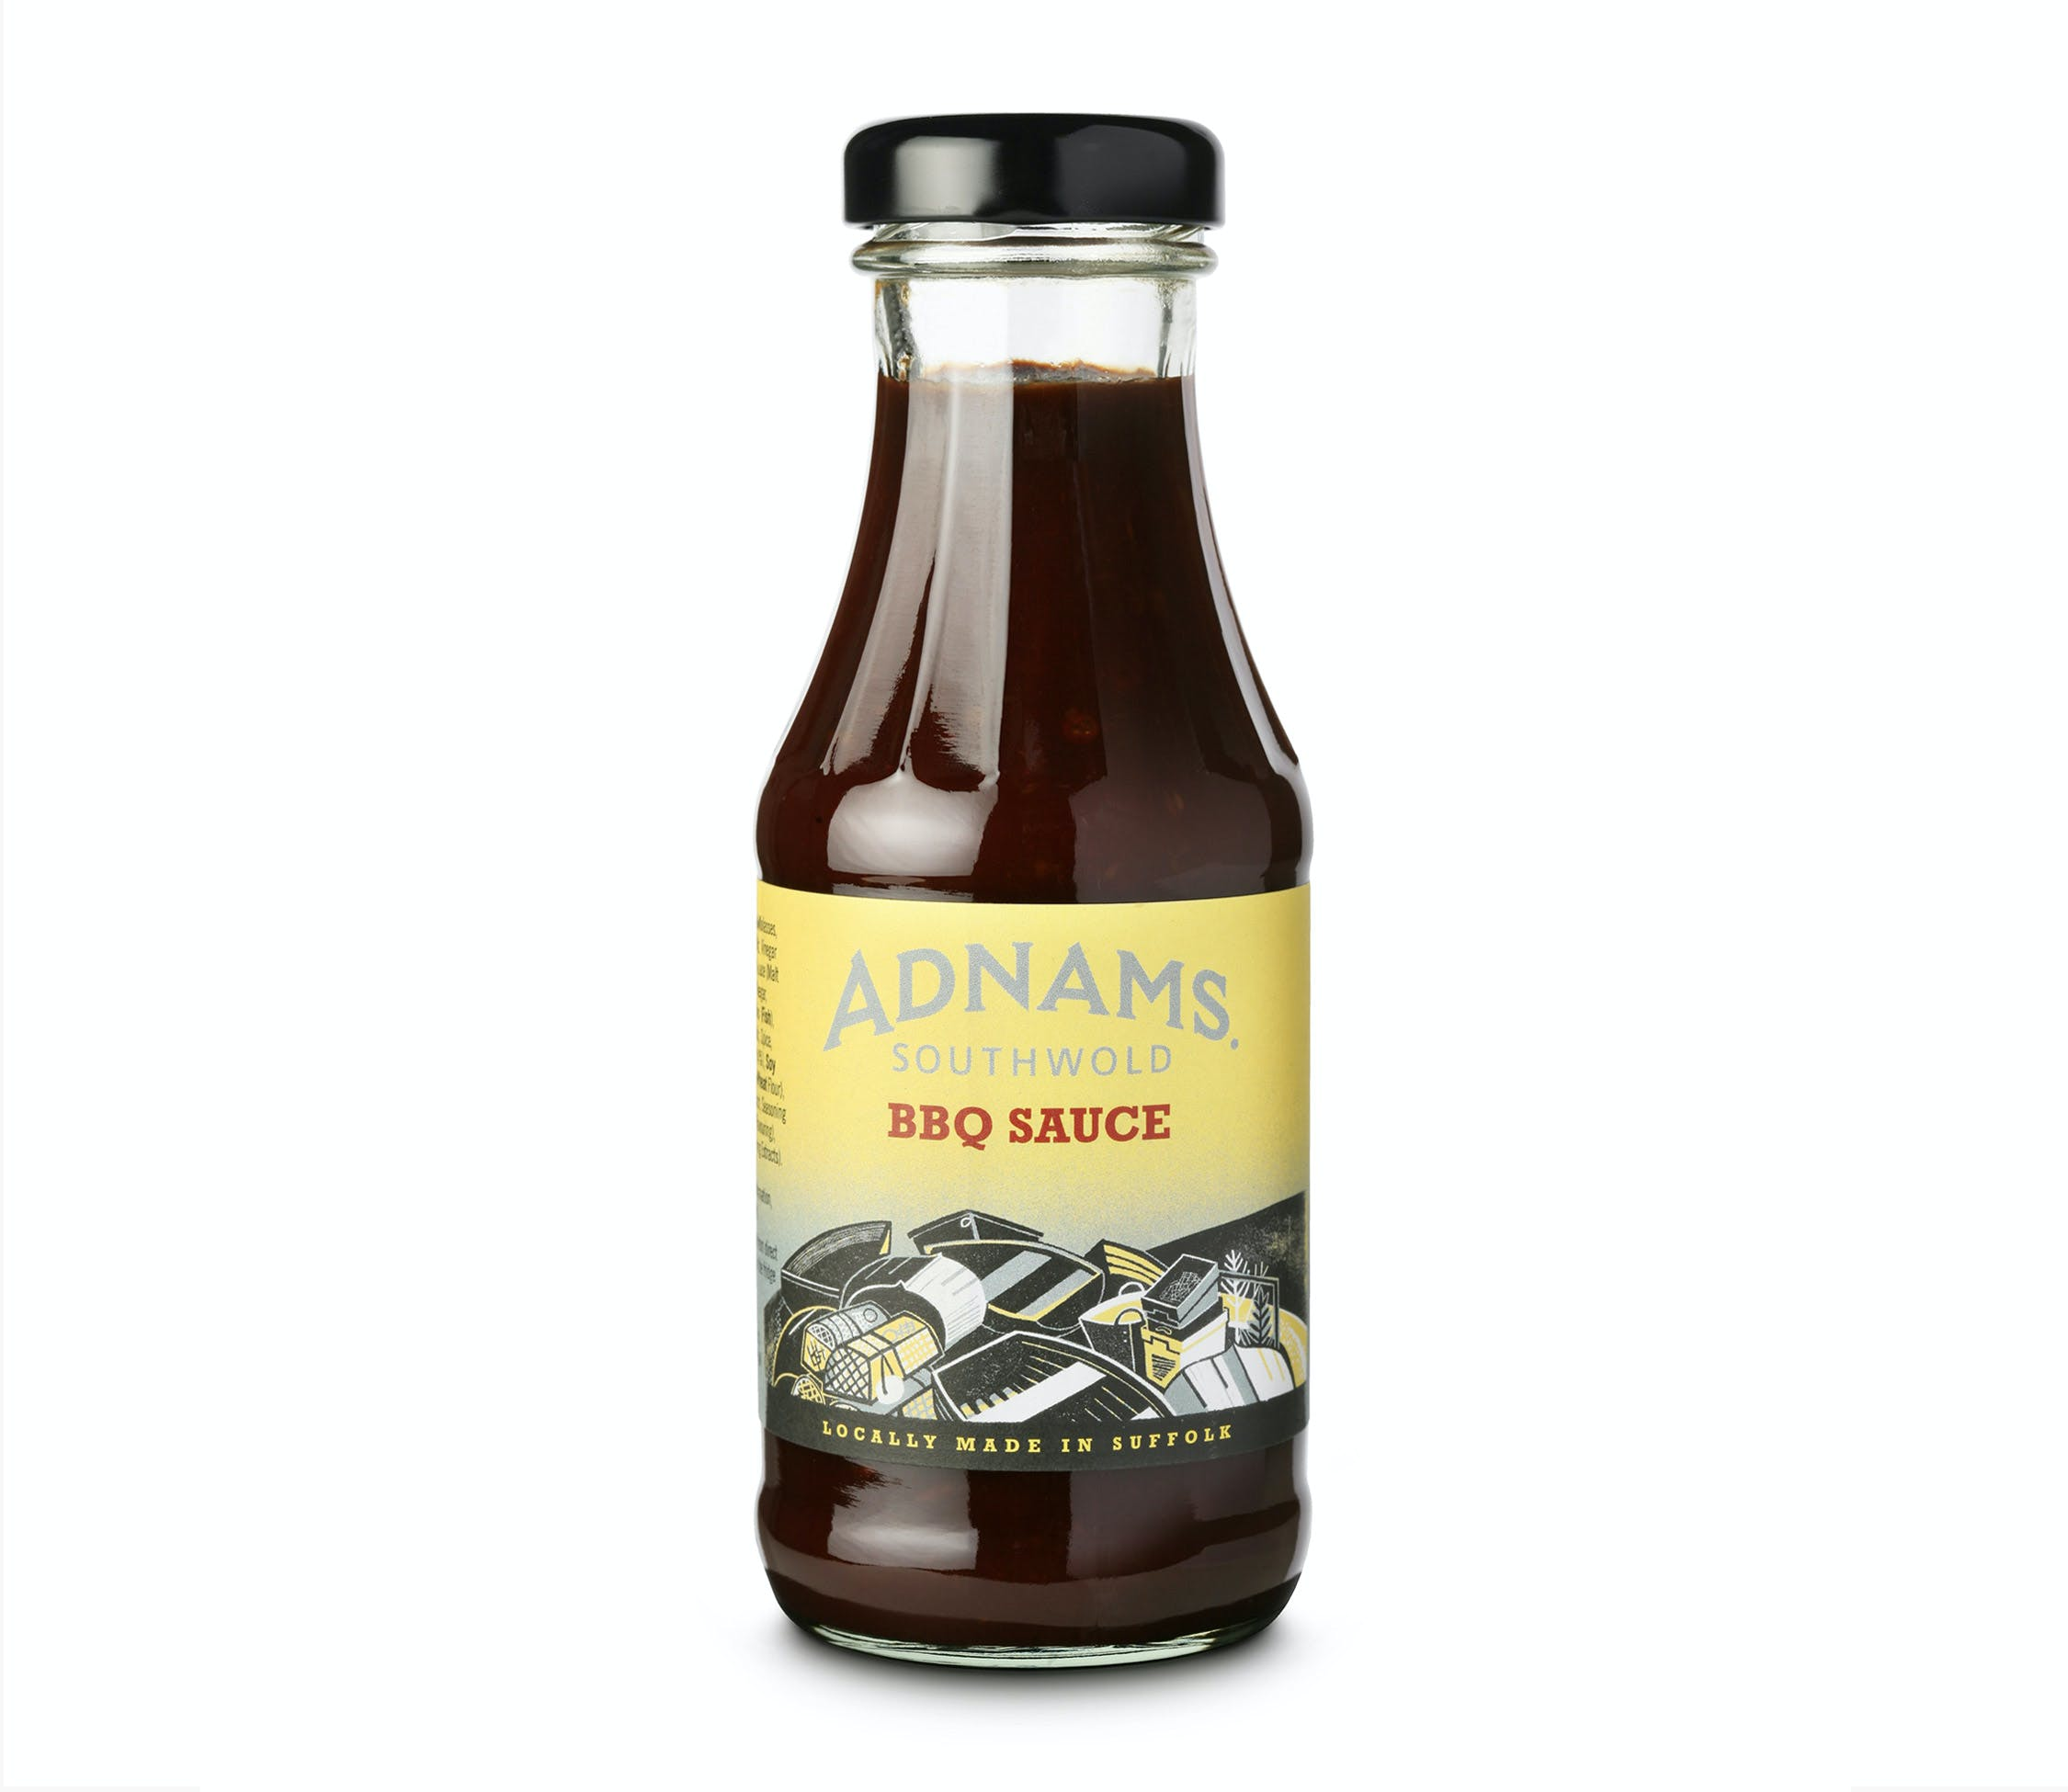 Stockists of Adnams BBQ Sauce